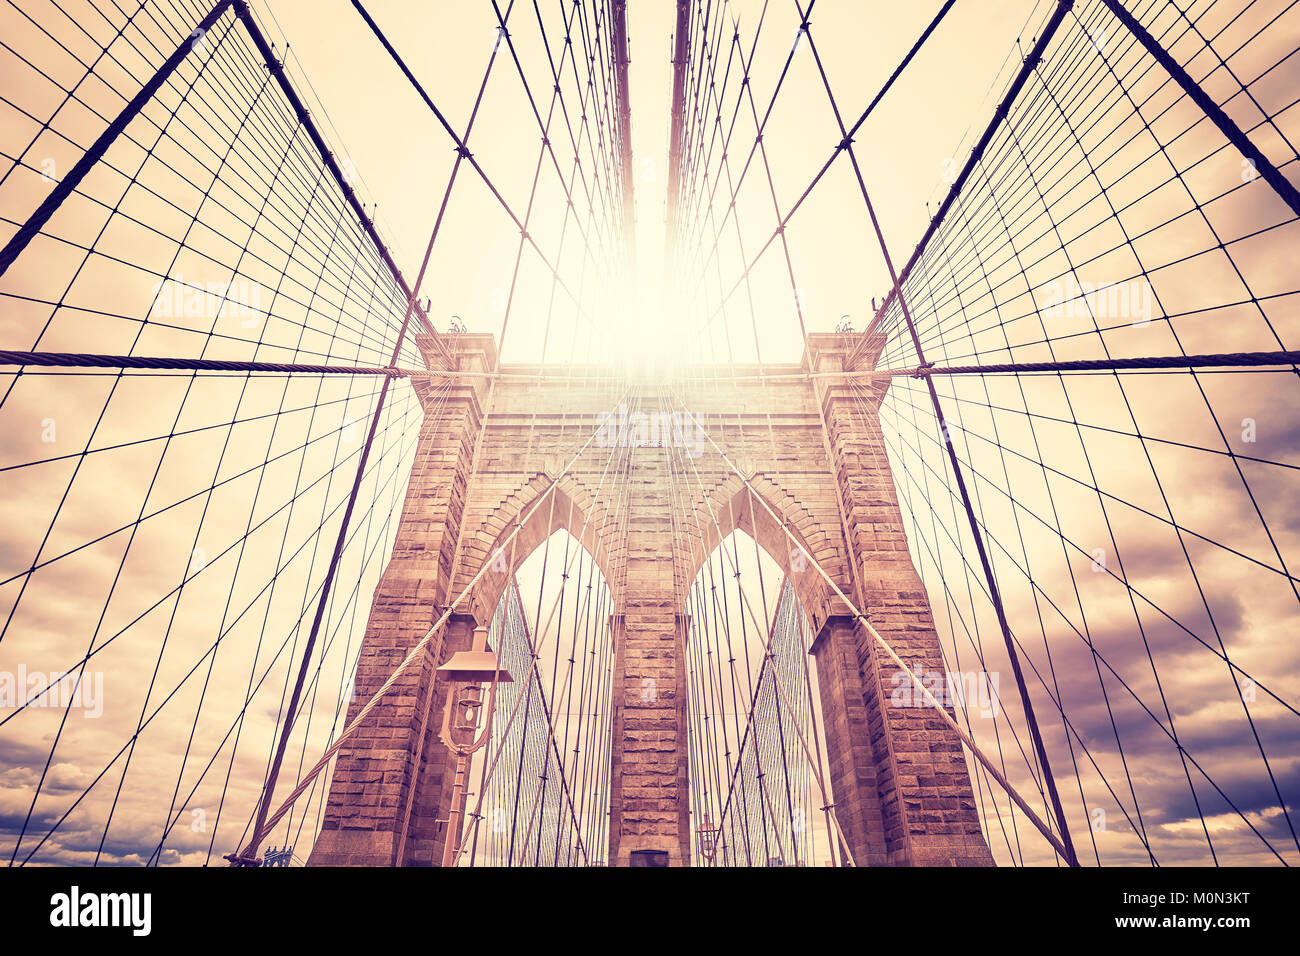 Wide angle picture of the Brooklyn Bridge at sunset, color toned picture, USA. - Stock Image